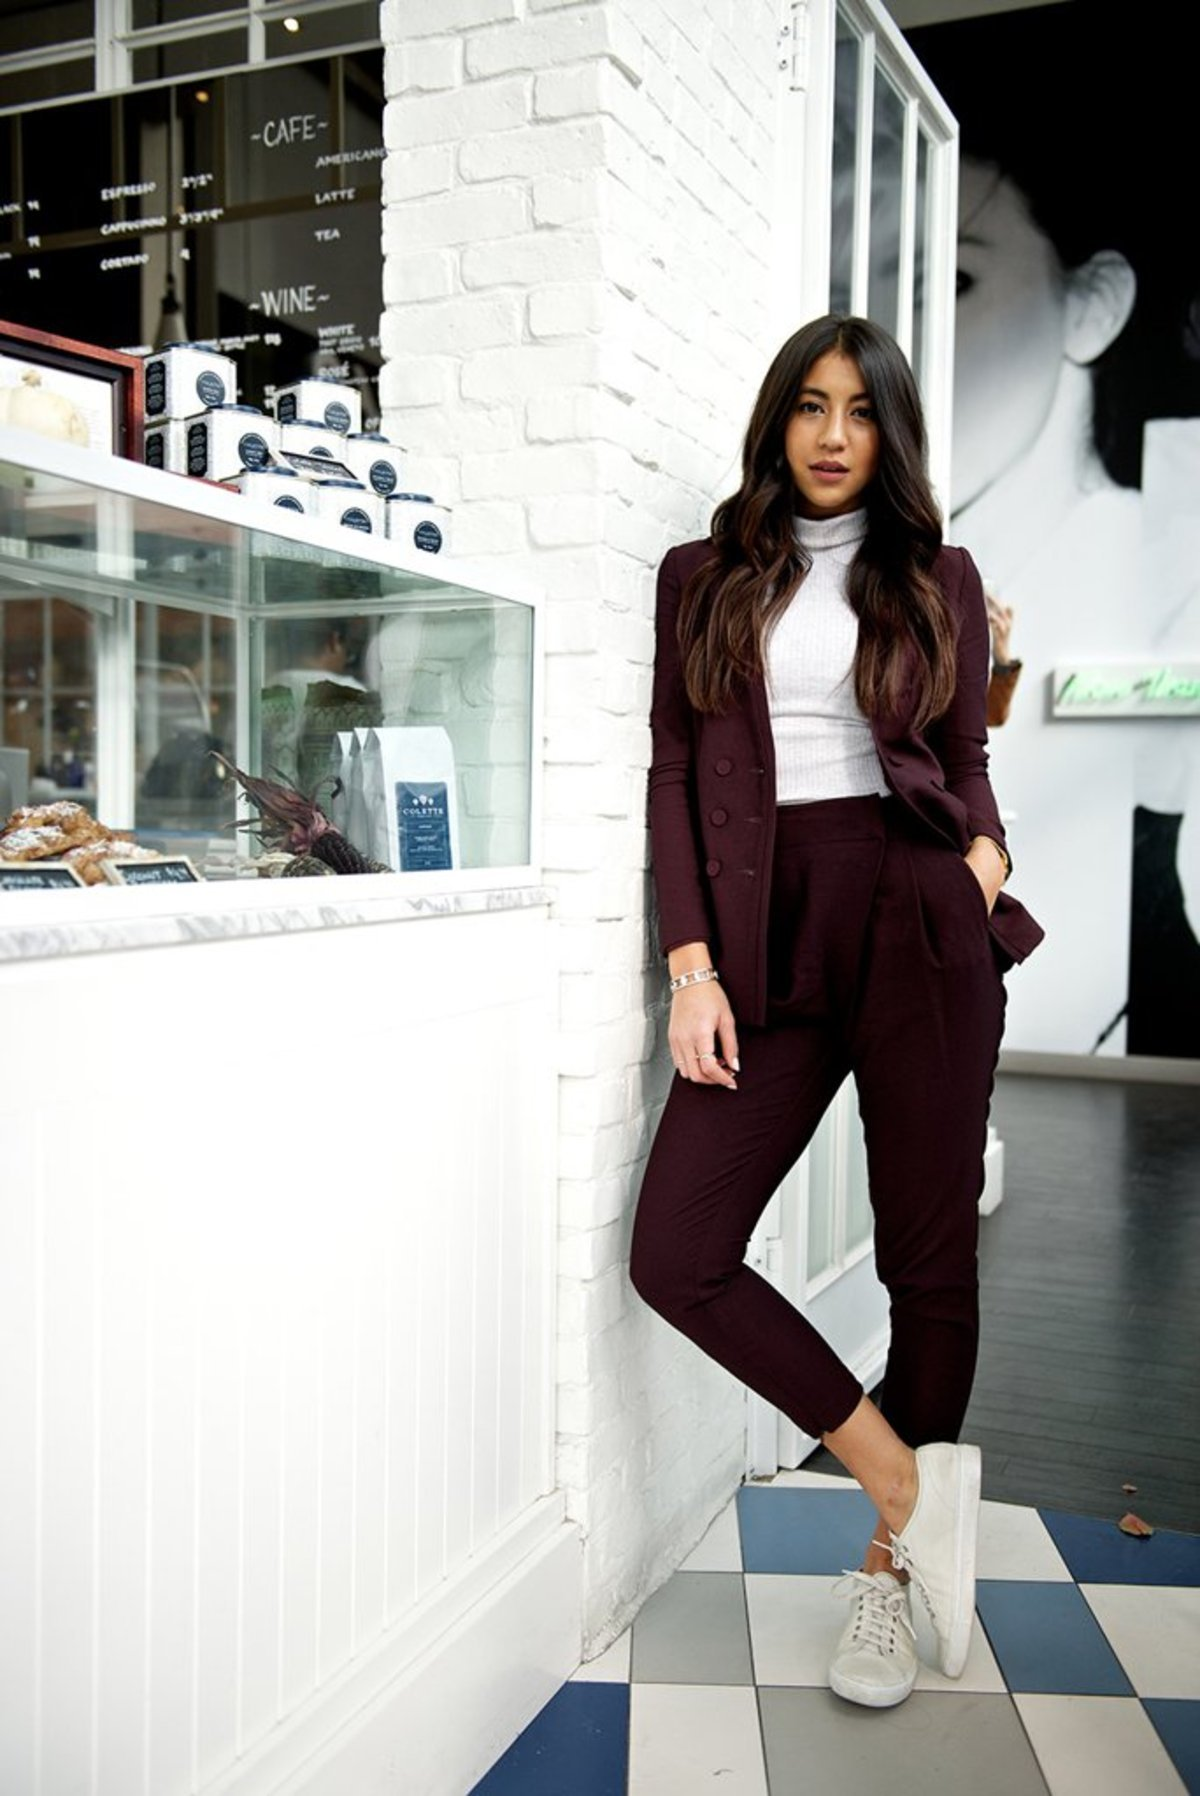 subtle-crop-trouser-adds-bit-sexy-your-suit-without-being-obvious